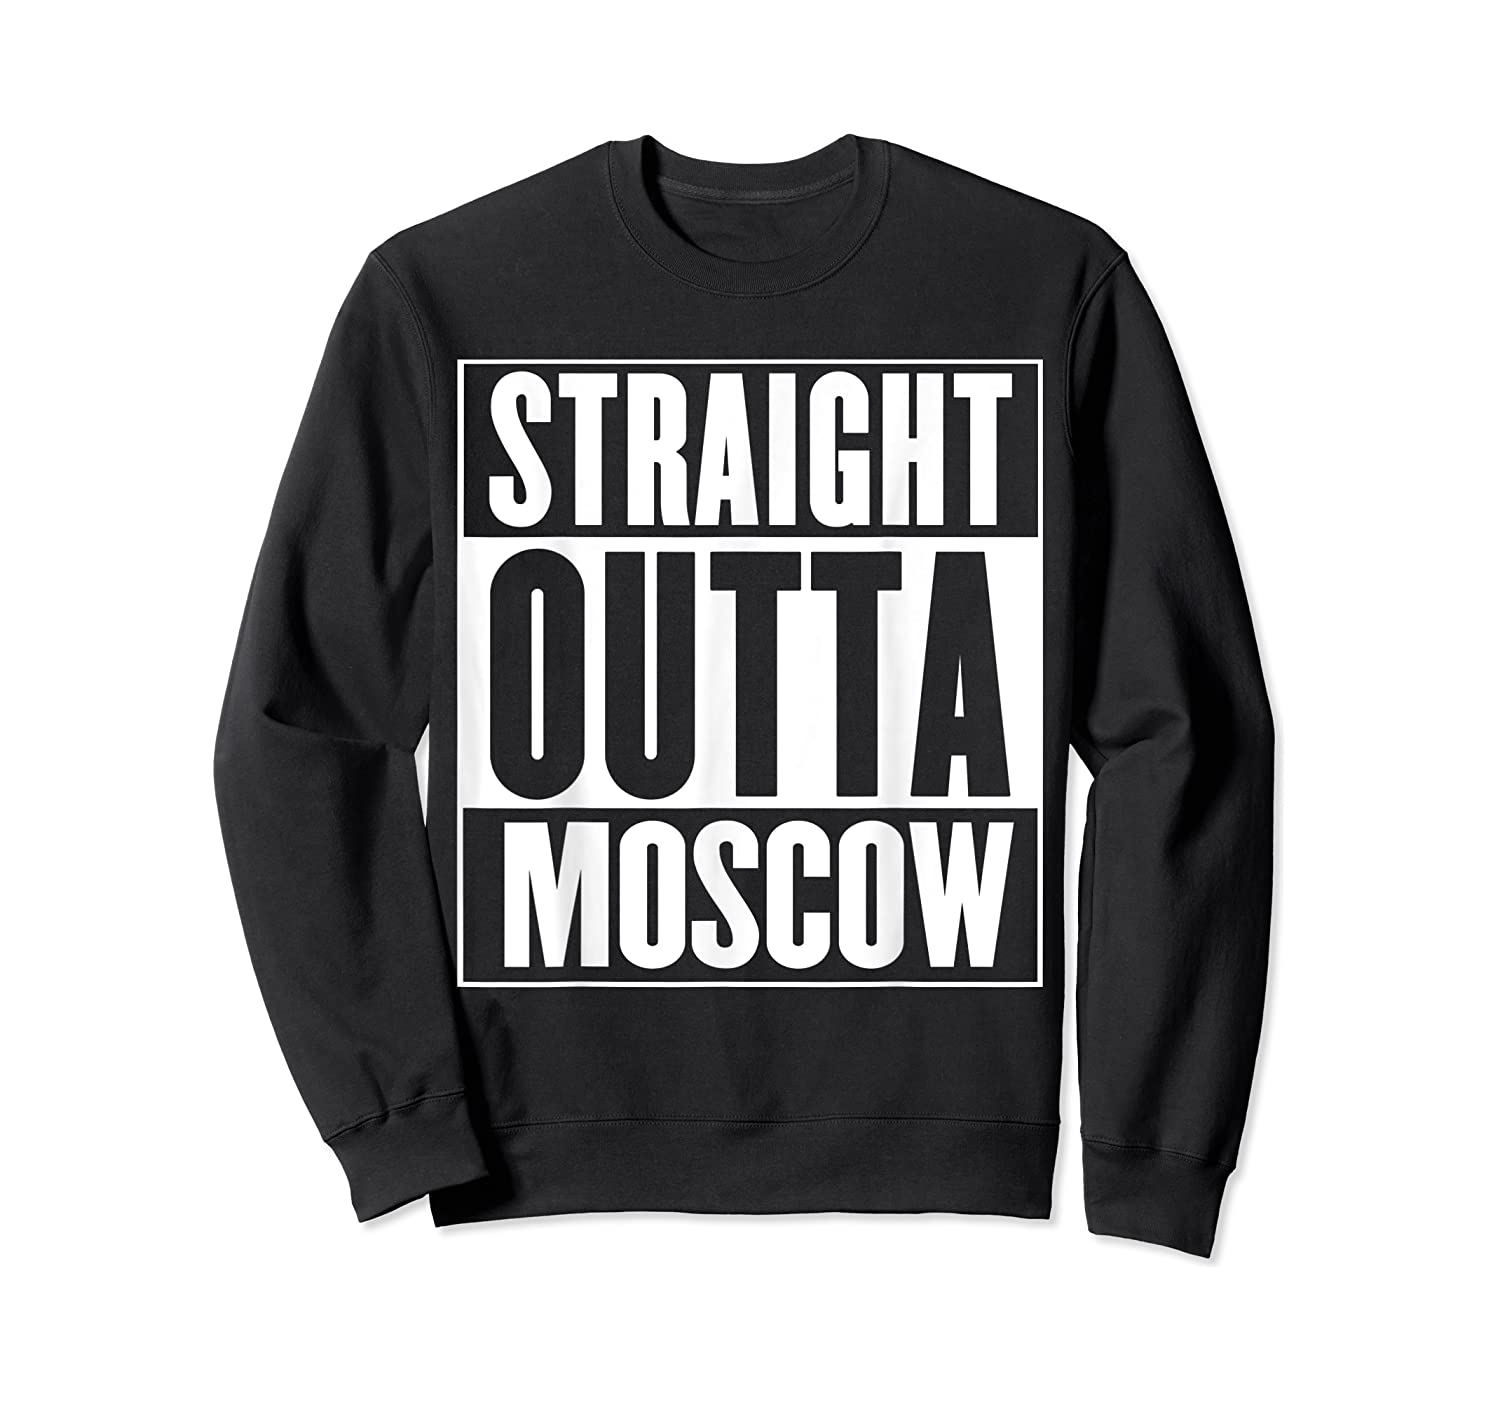 Straight Outta Moscow Shirts Crewneck Sweater